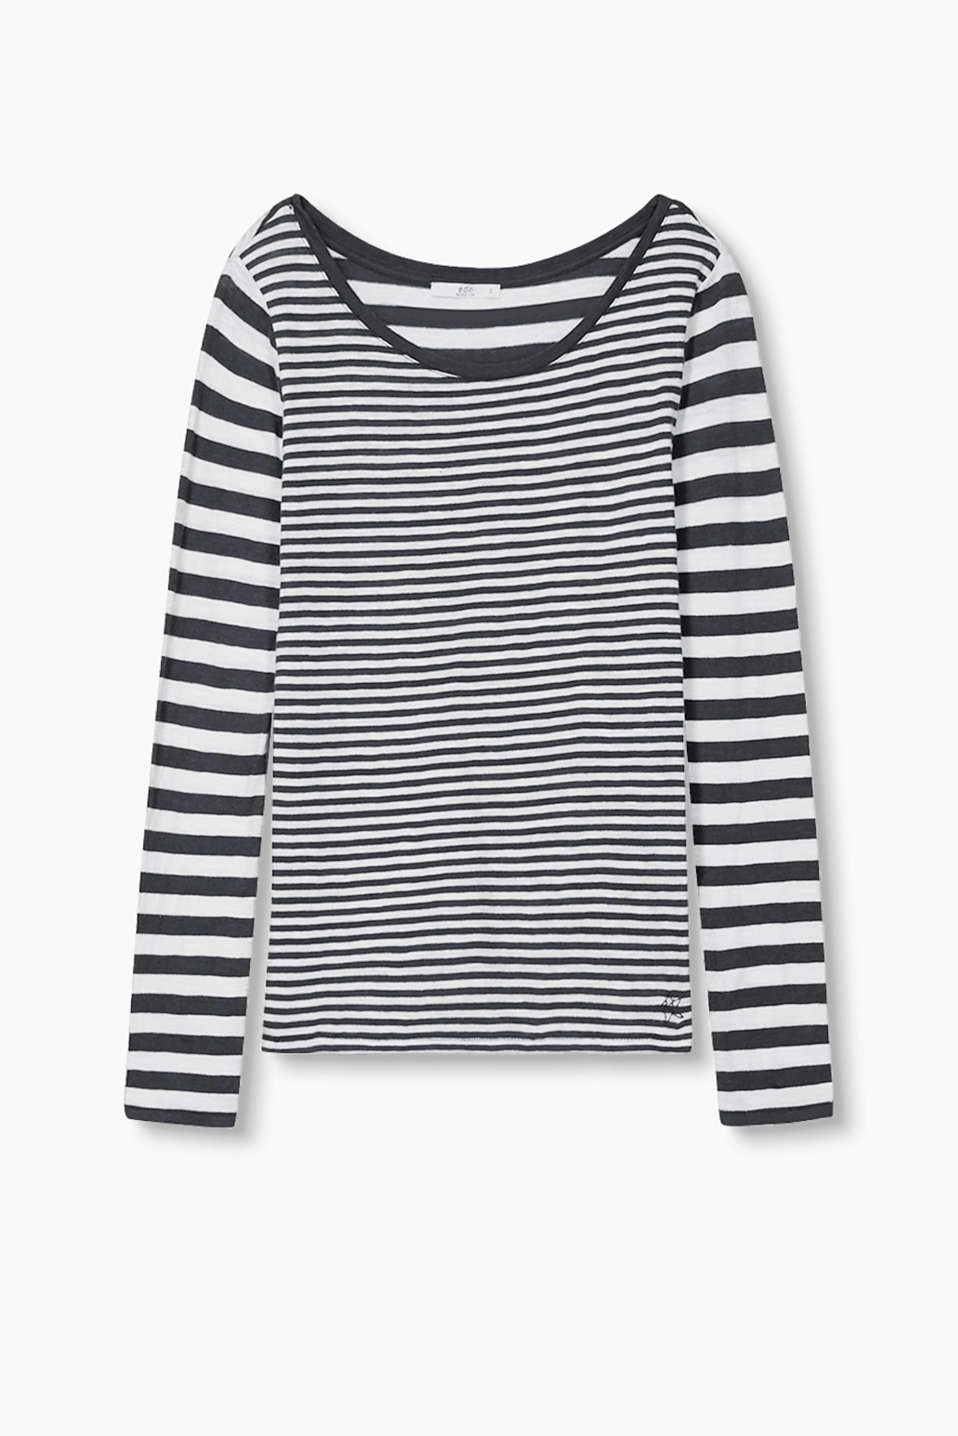 Soft long sleeve cotton top in a fashionable mixed stripe design